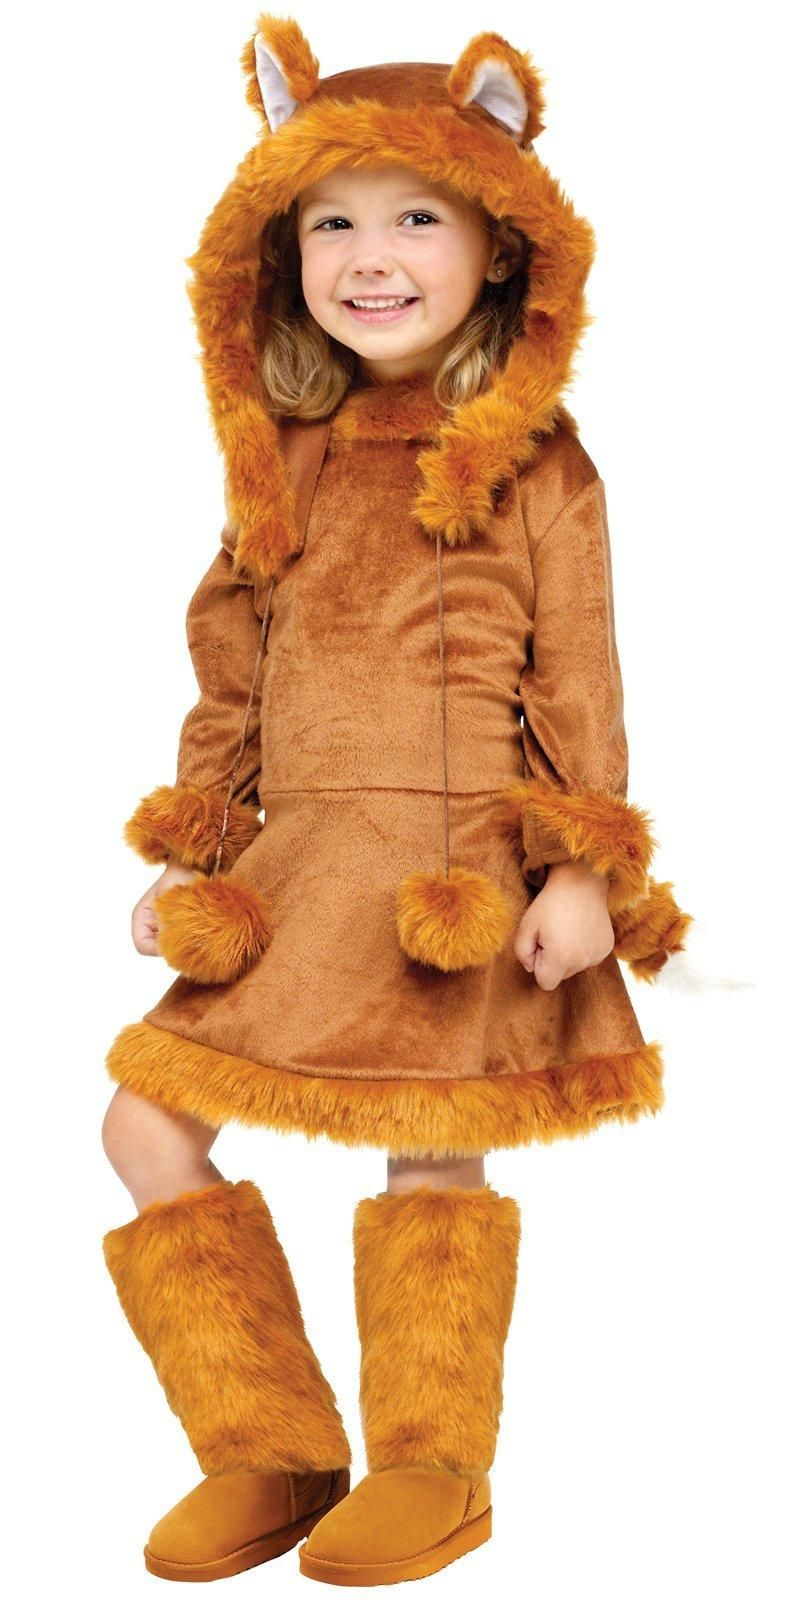 Fun World Costumes Baby Girlu0027s Sweet Fox Toddler Costume Includes Dress Plush Tail Boot Covers and Hood with Ears and Poms Toddler/Child Size  sc 1 st  Pinterest & Sweet Fox Child Costume | Fox costume Foxes and Children costumes